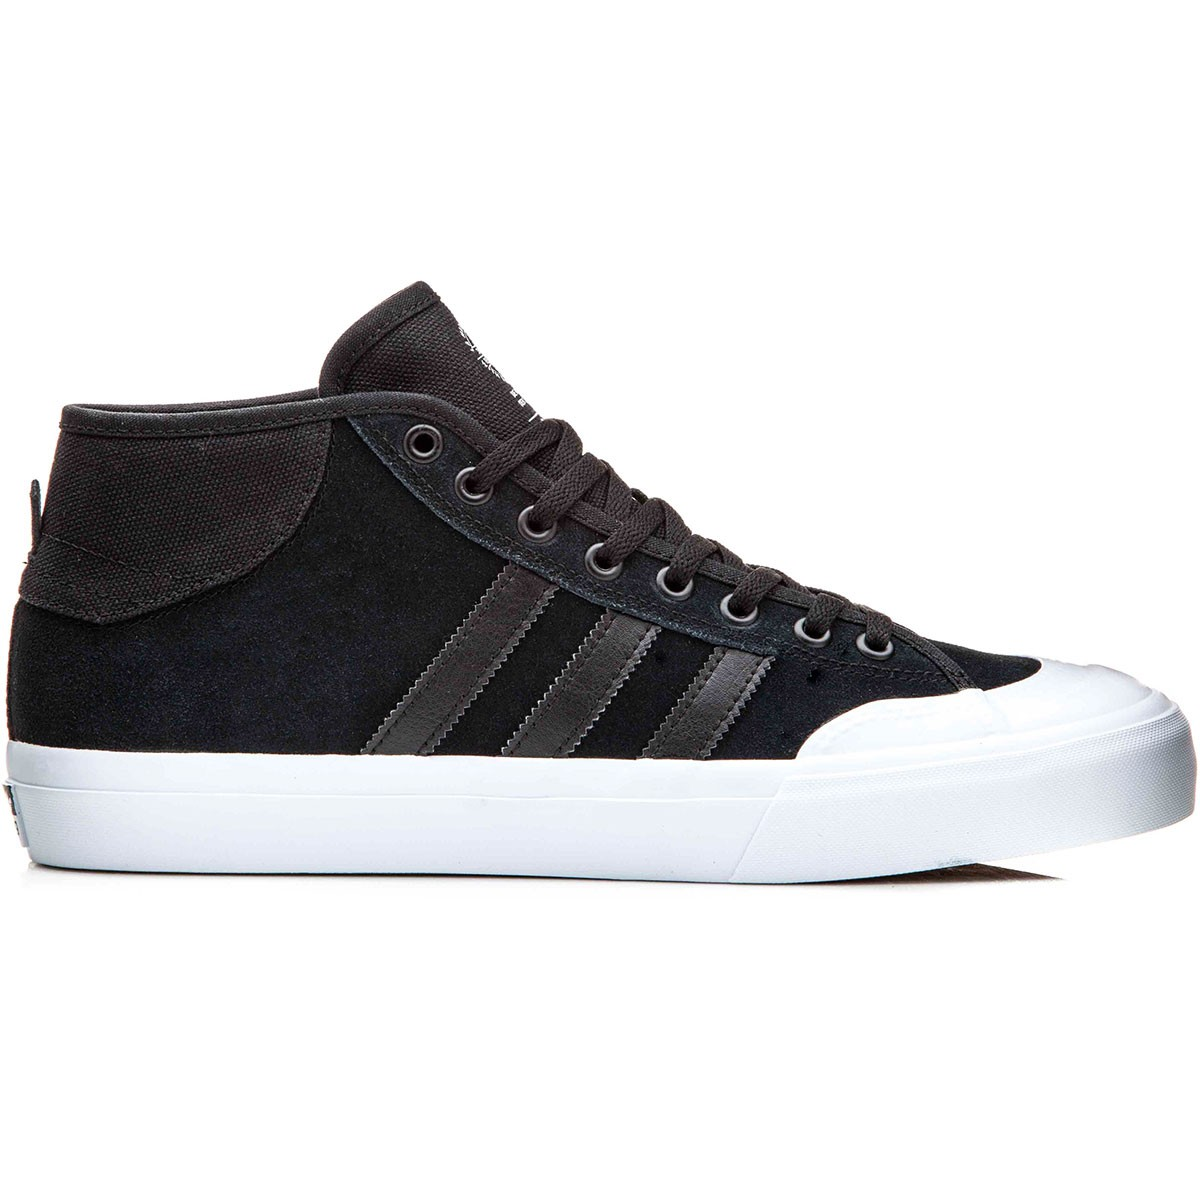 9921bd8ad21 Adidas Matchcourt Mid Shoes - Black Black White - 13.0